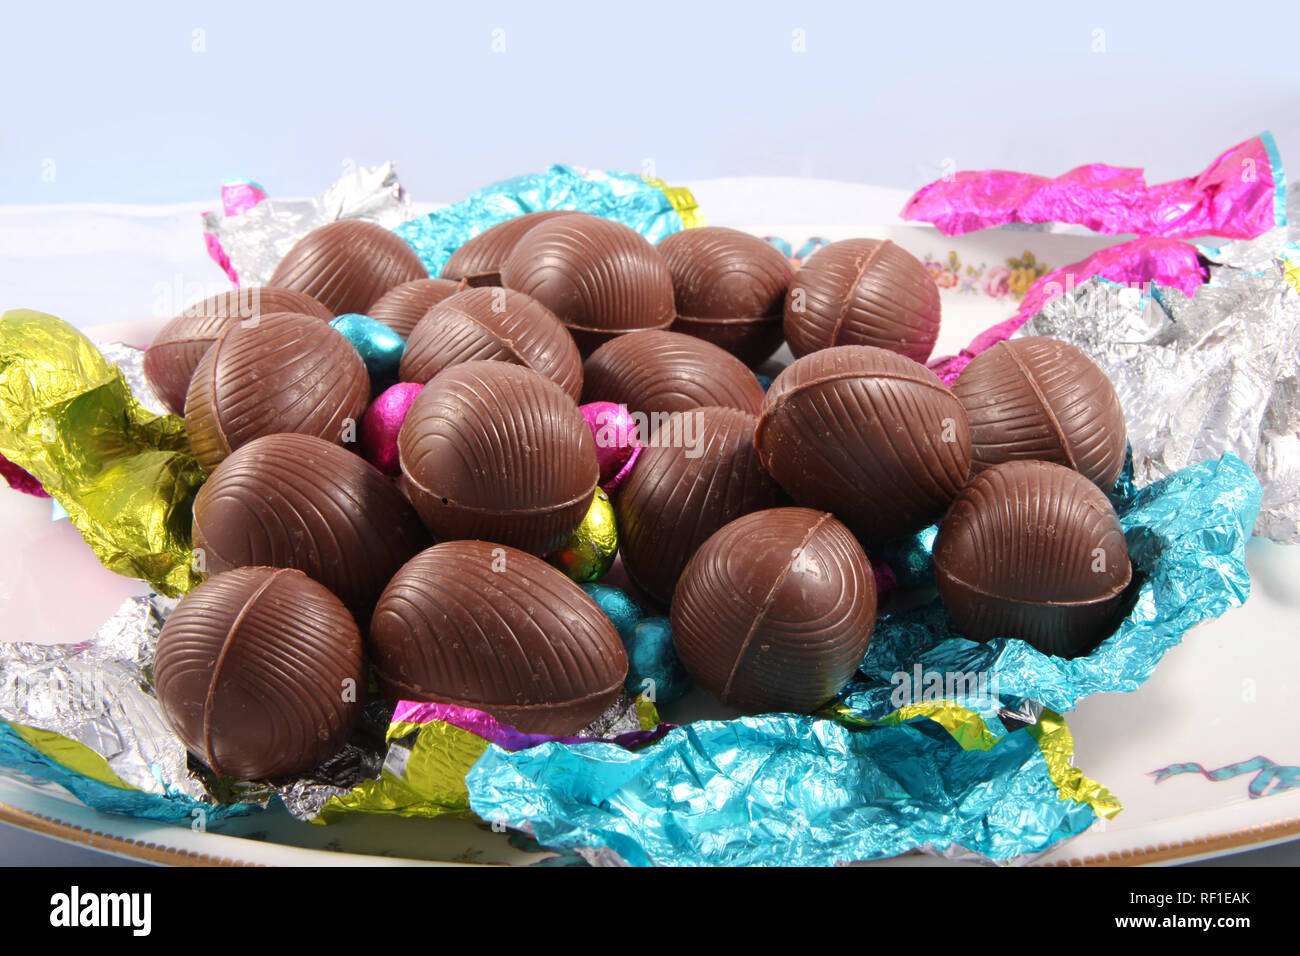 Pile of unwrapped chocolate easter eggs with the colourful foil wrapping surrounding it on a white background. - Stock Image